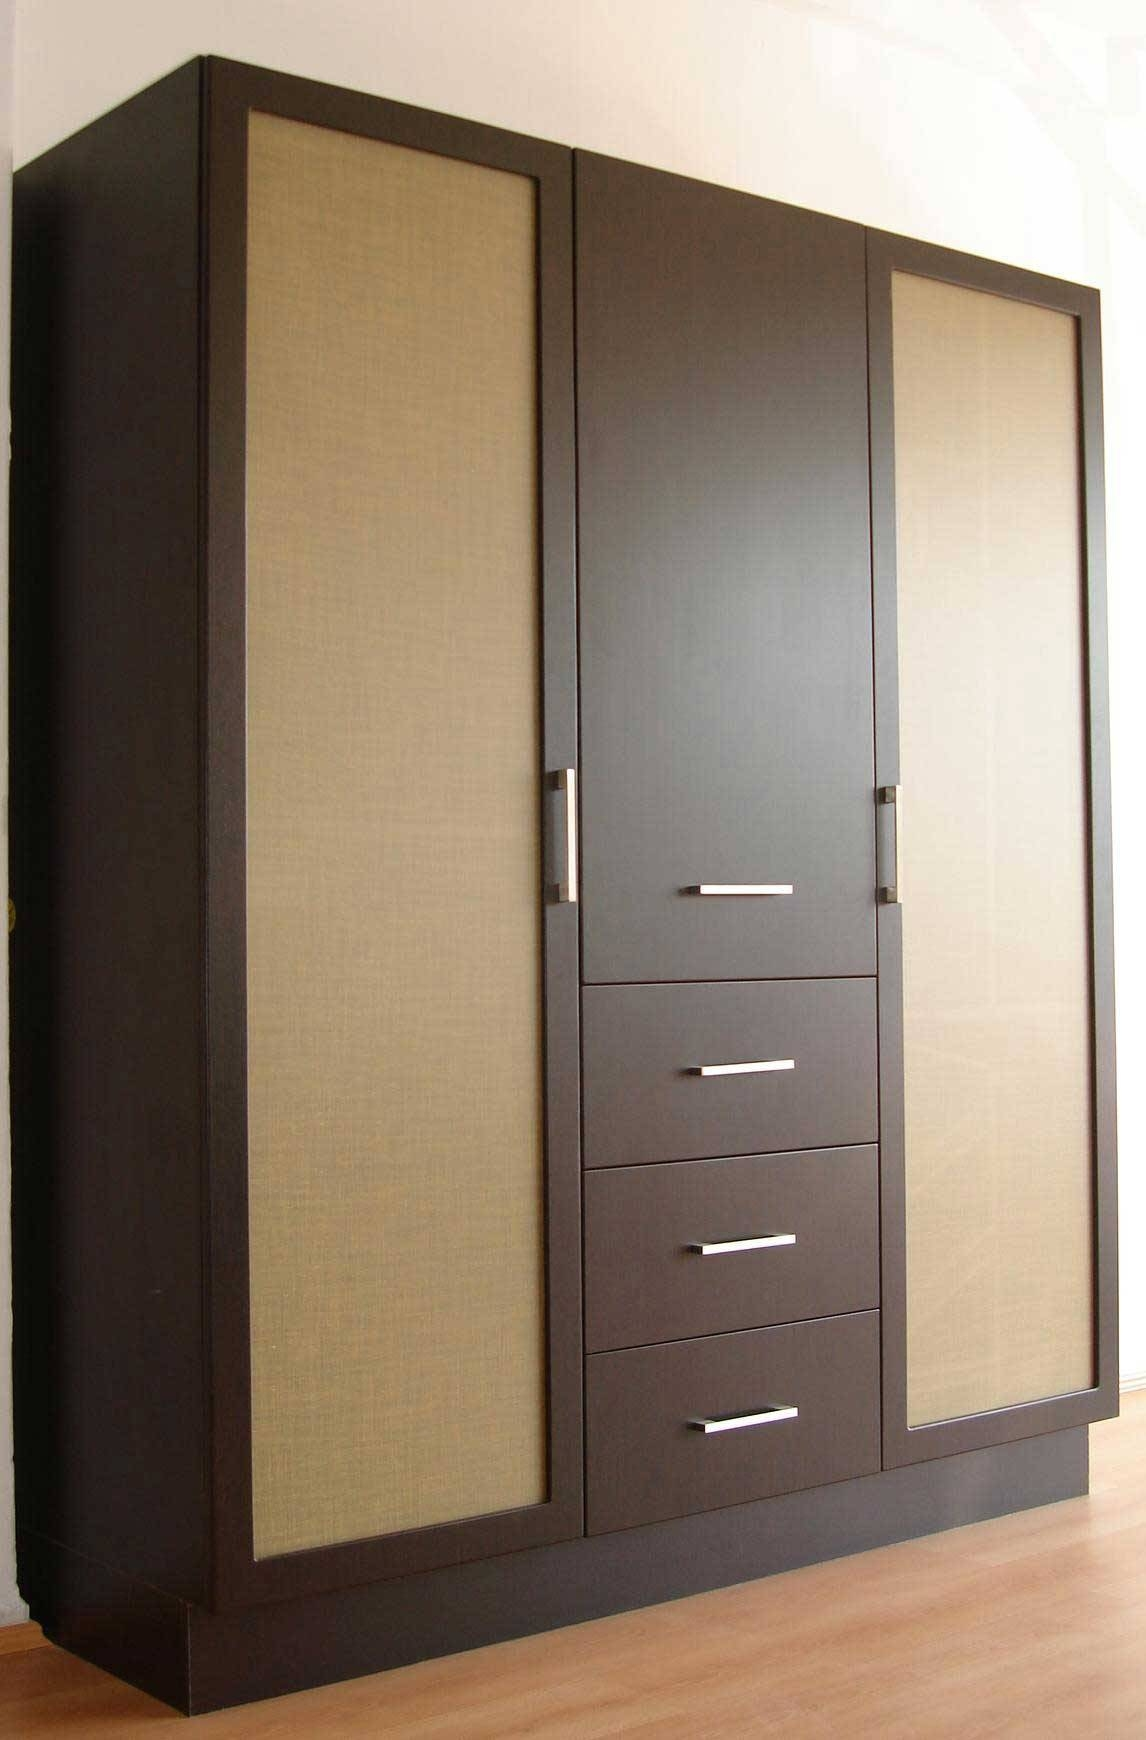 Dark Brown Stained Wooden Wardrobe With Door Panel Also Having for Dark Wood Wardrobe Closet (Image 11 of 30)